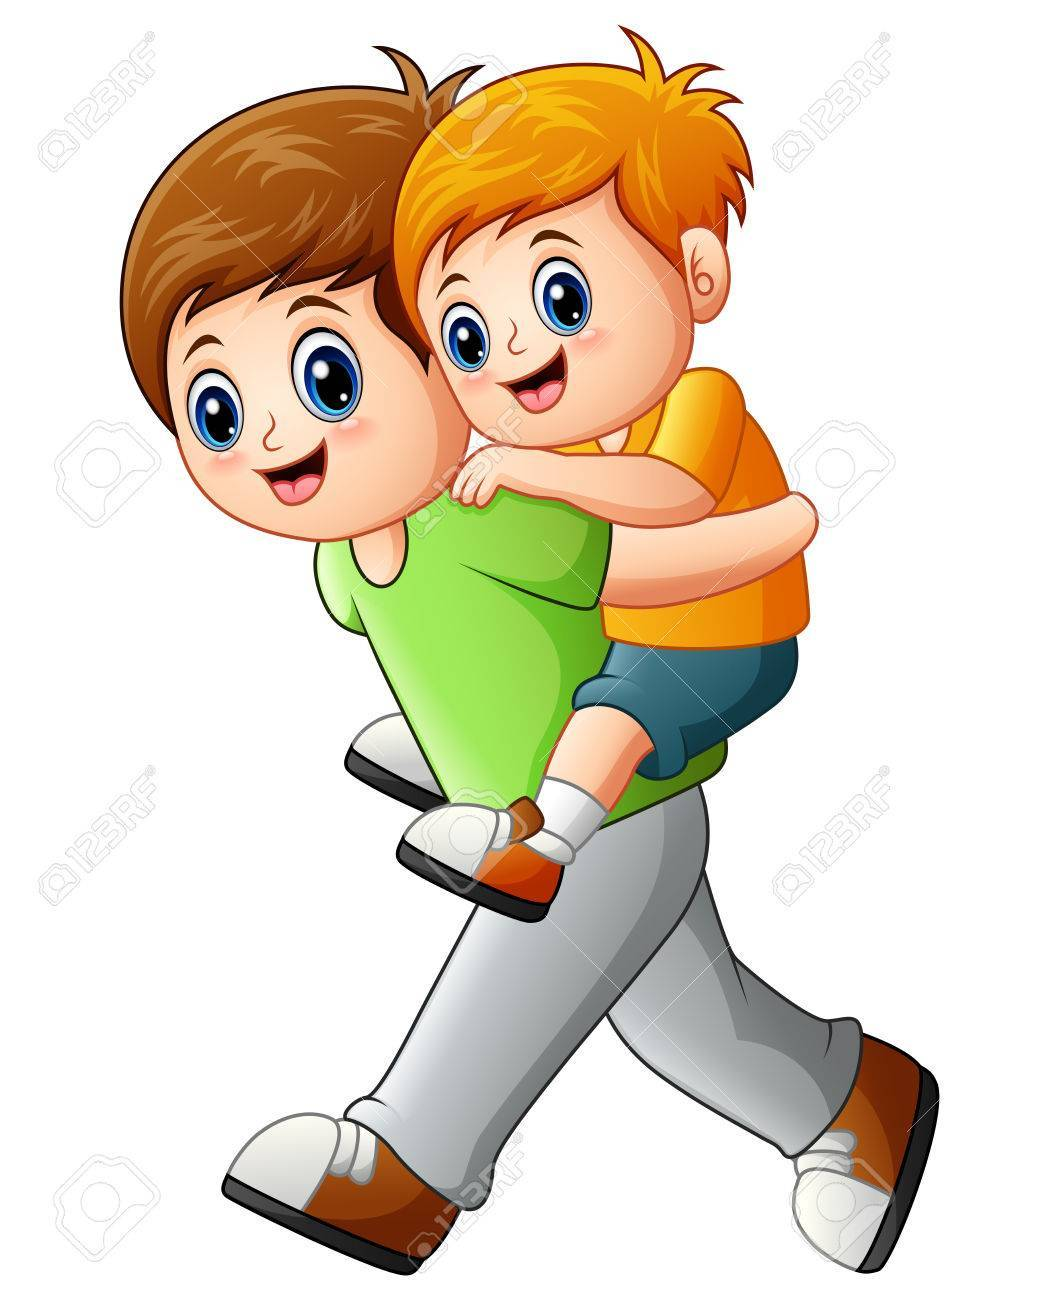 Clipart of a brother clip art transparent Younger brother clipart » Clipart Portal clip art transparent